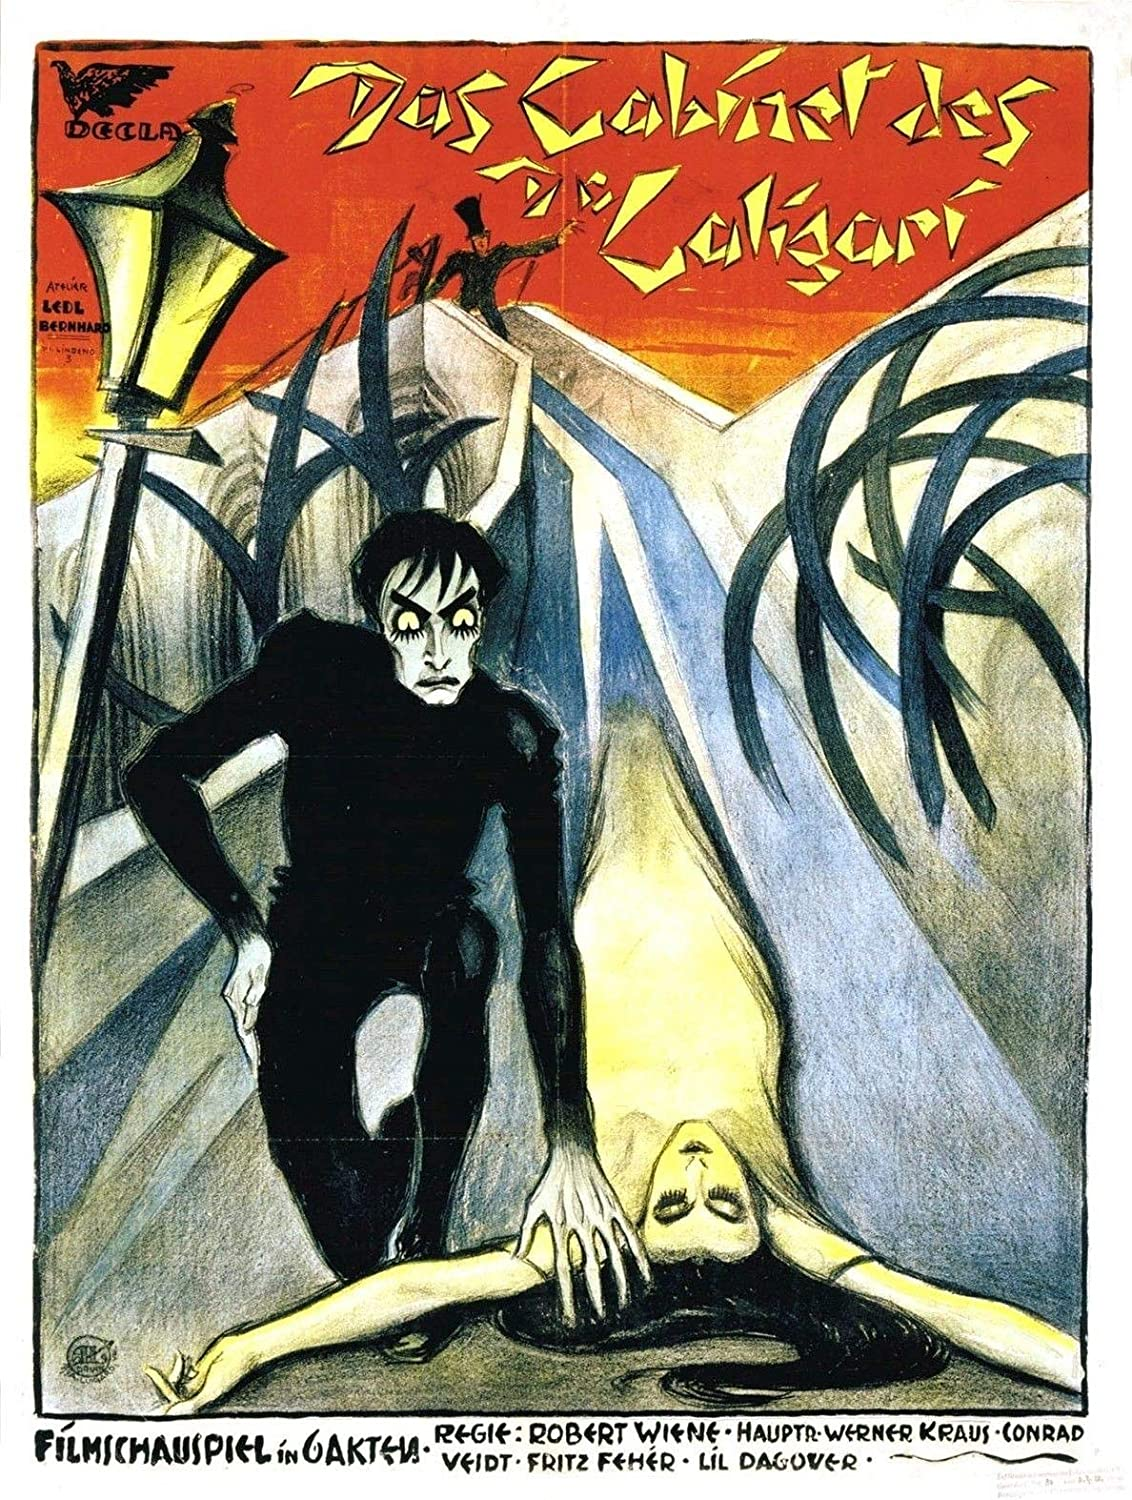 72514 The Cabinet of DR. Caligari Movie 1920 Classic Decor Wall 36x24 Poster Print